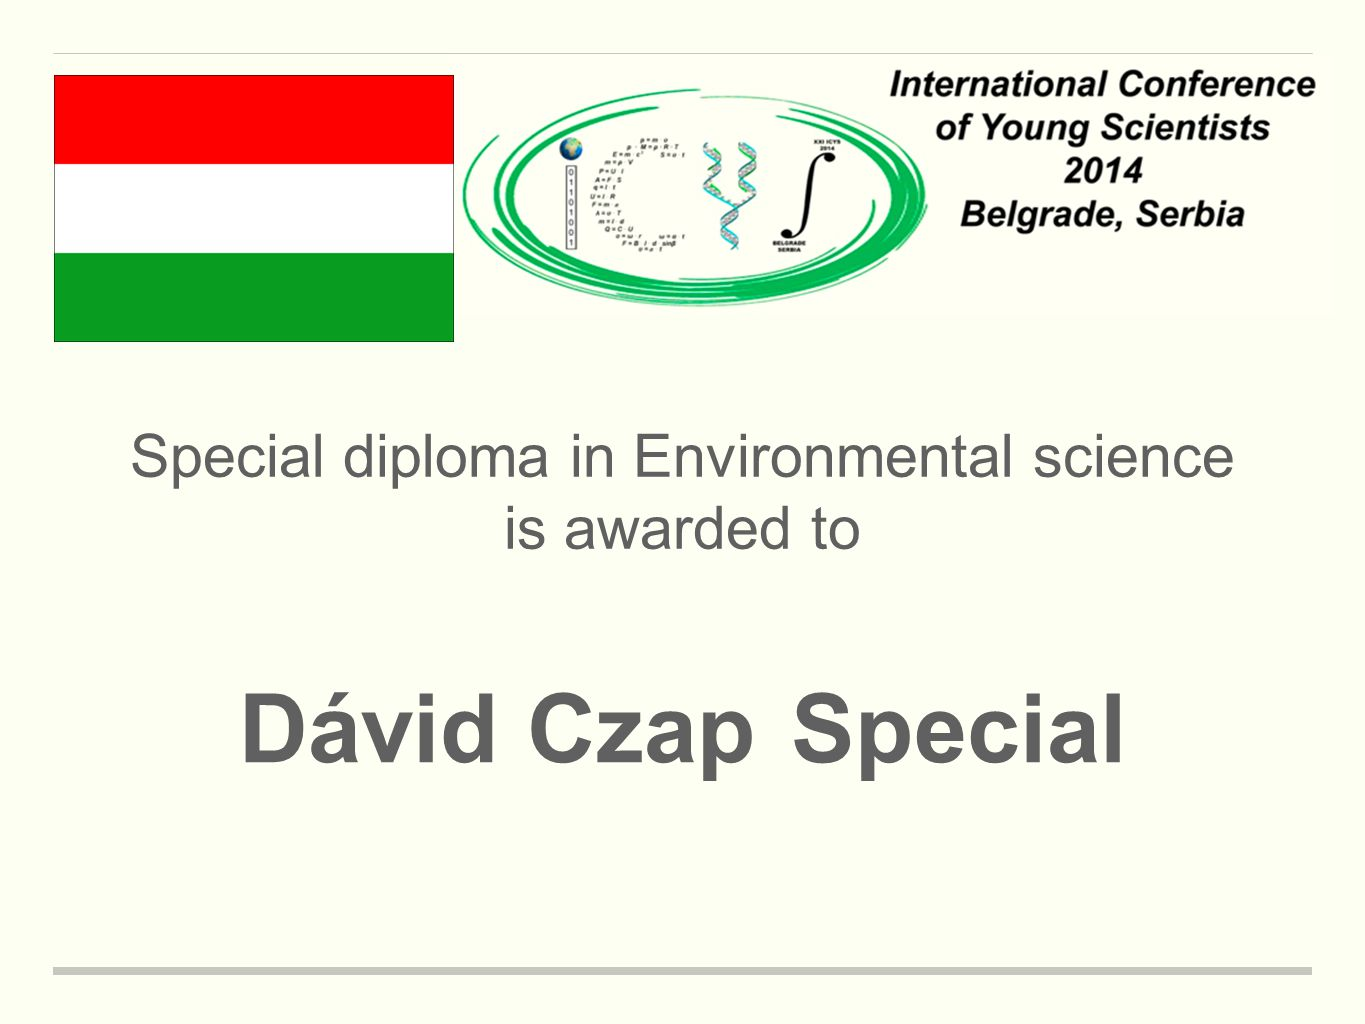 Special diploma in Environmental science is awarded to Dávid CzapSpecial